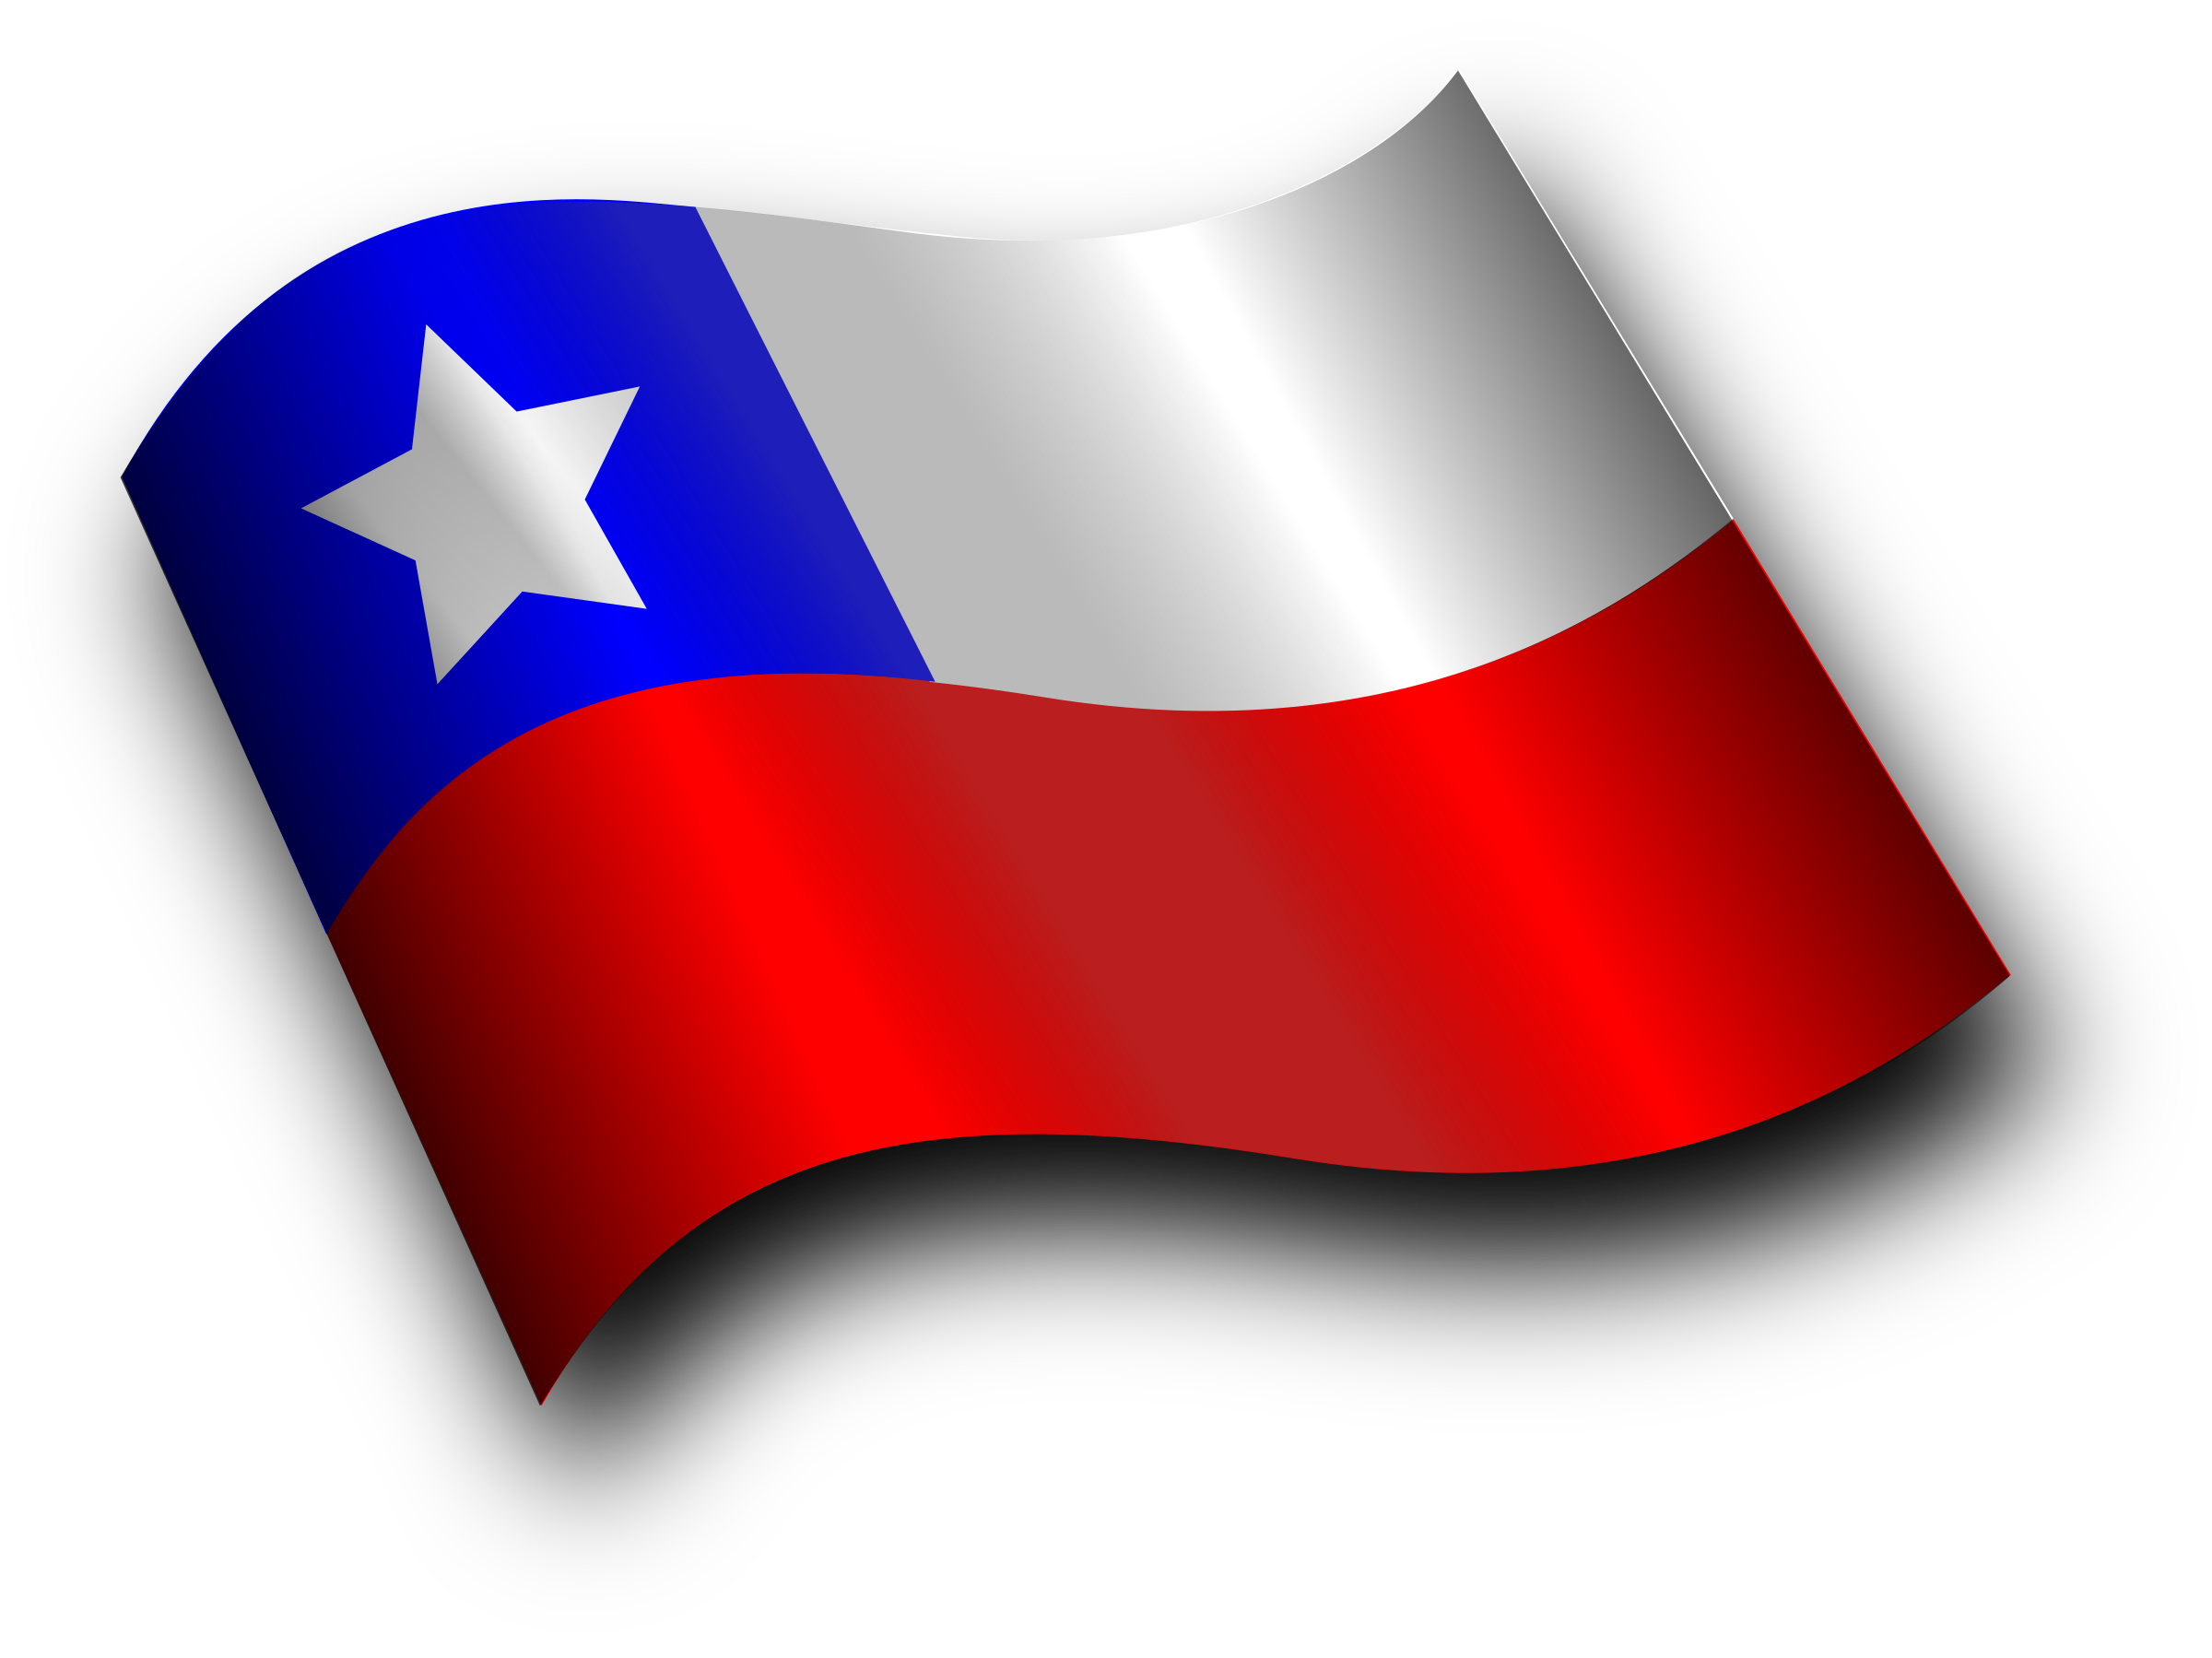 Chilean Flag 3 by Merlin2525